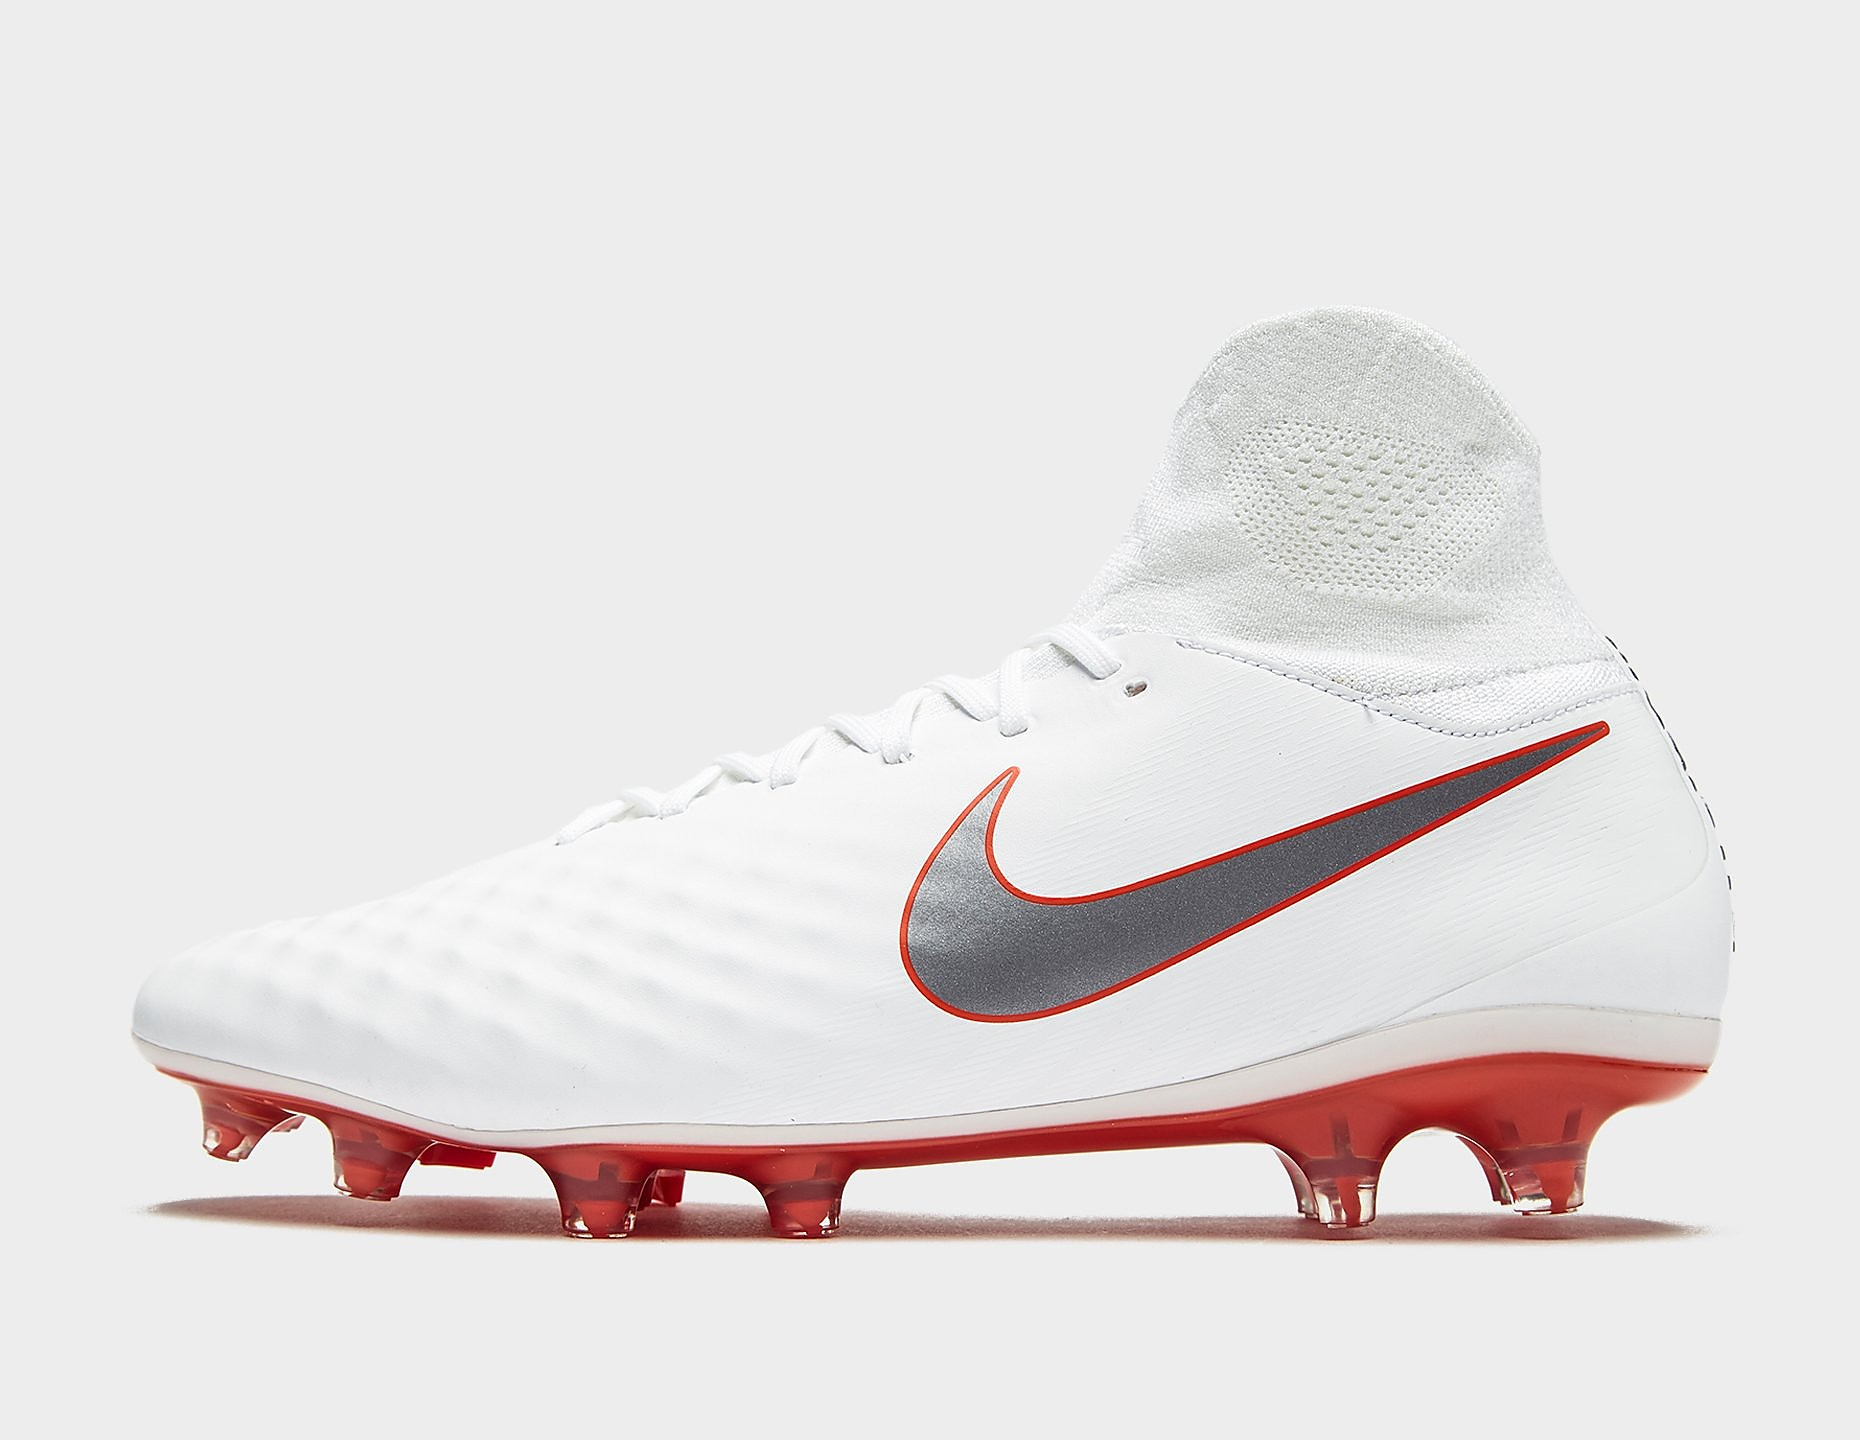 Nike Just Do It Magista Pro Dynamic Fit FG Homme